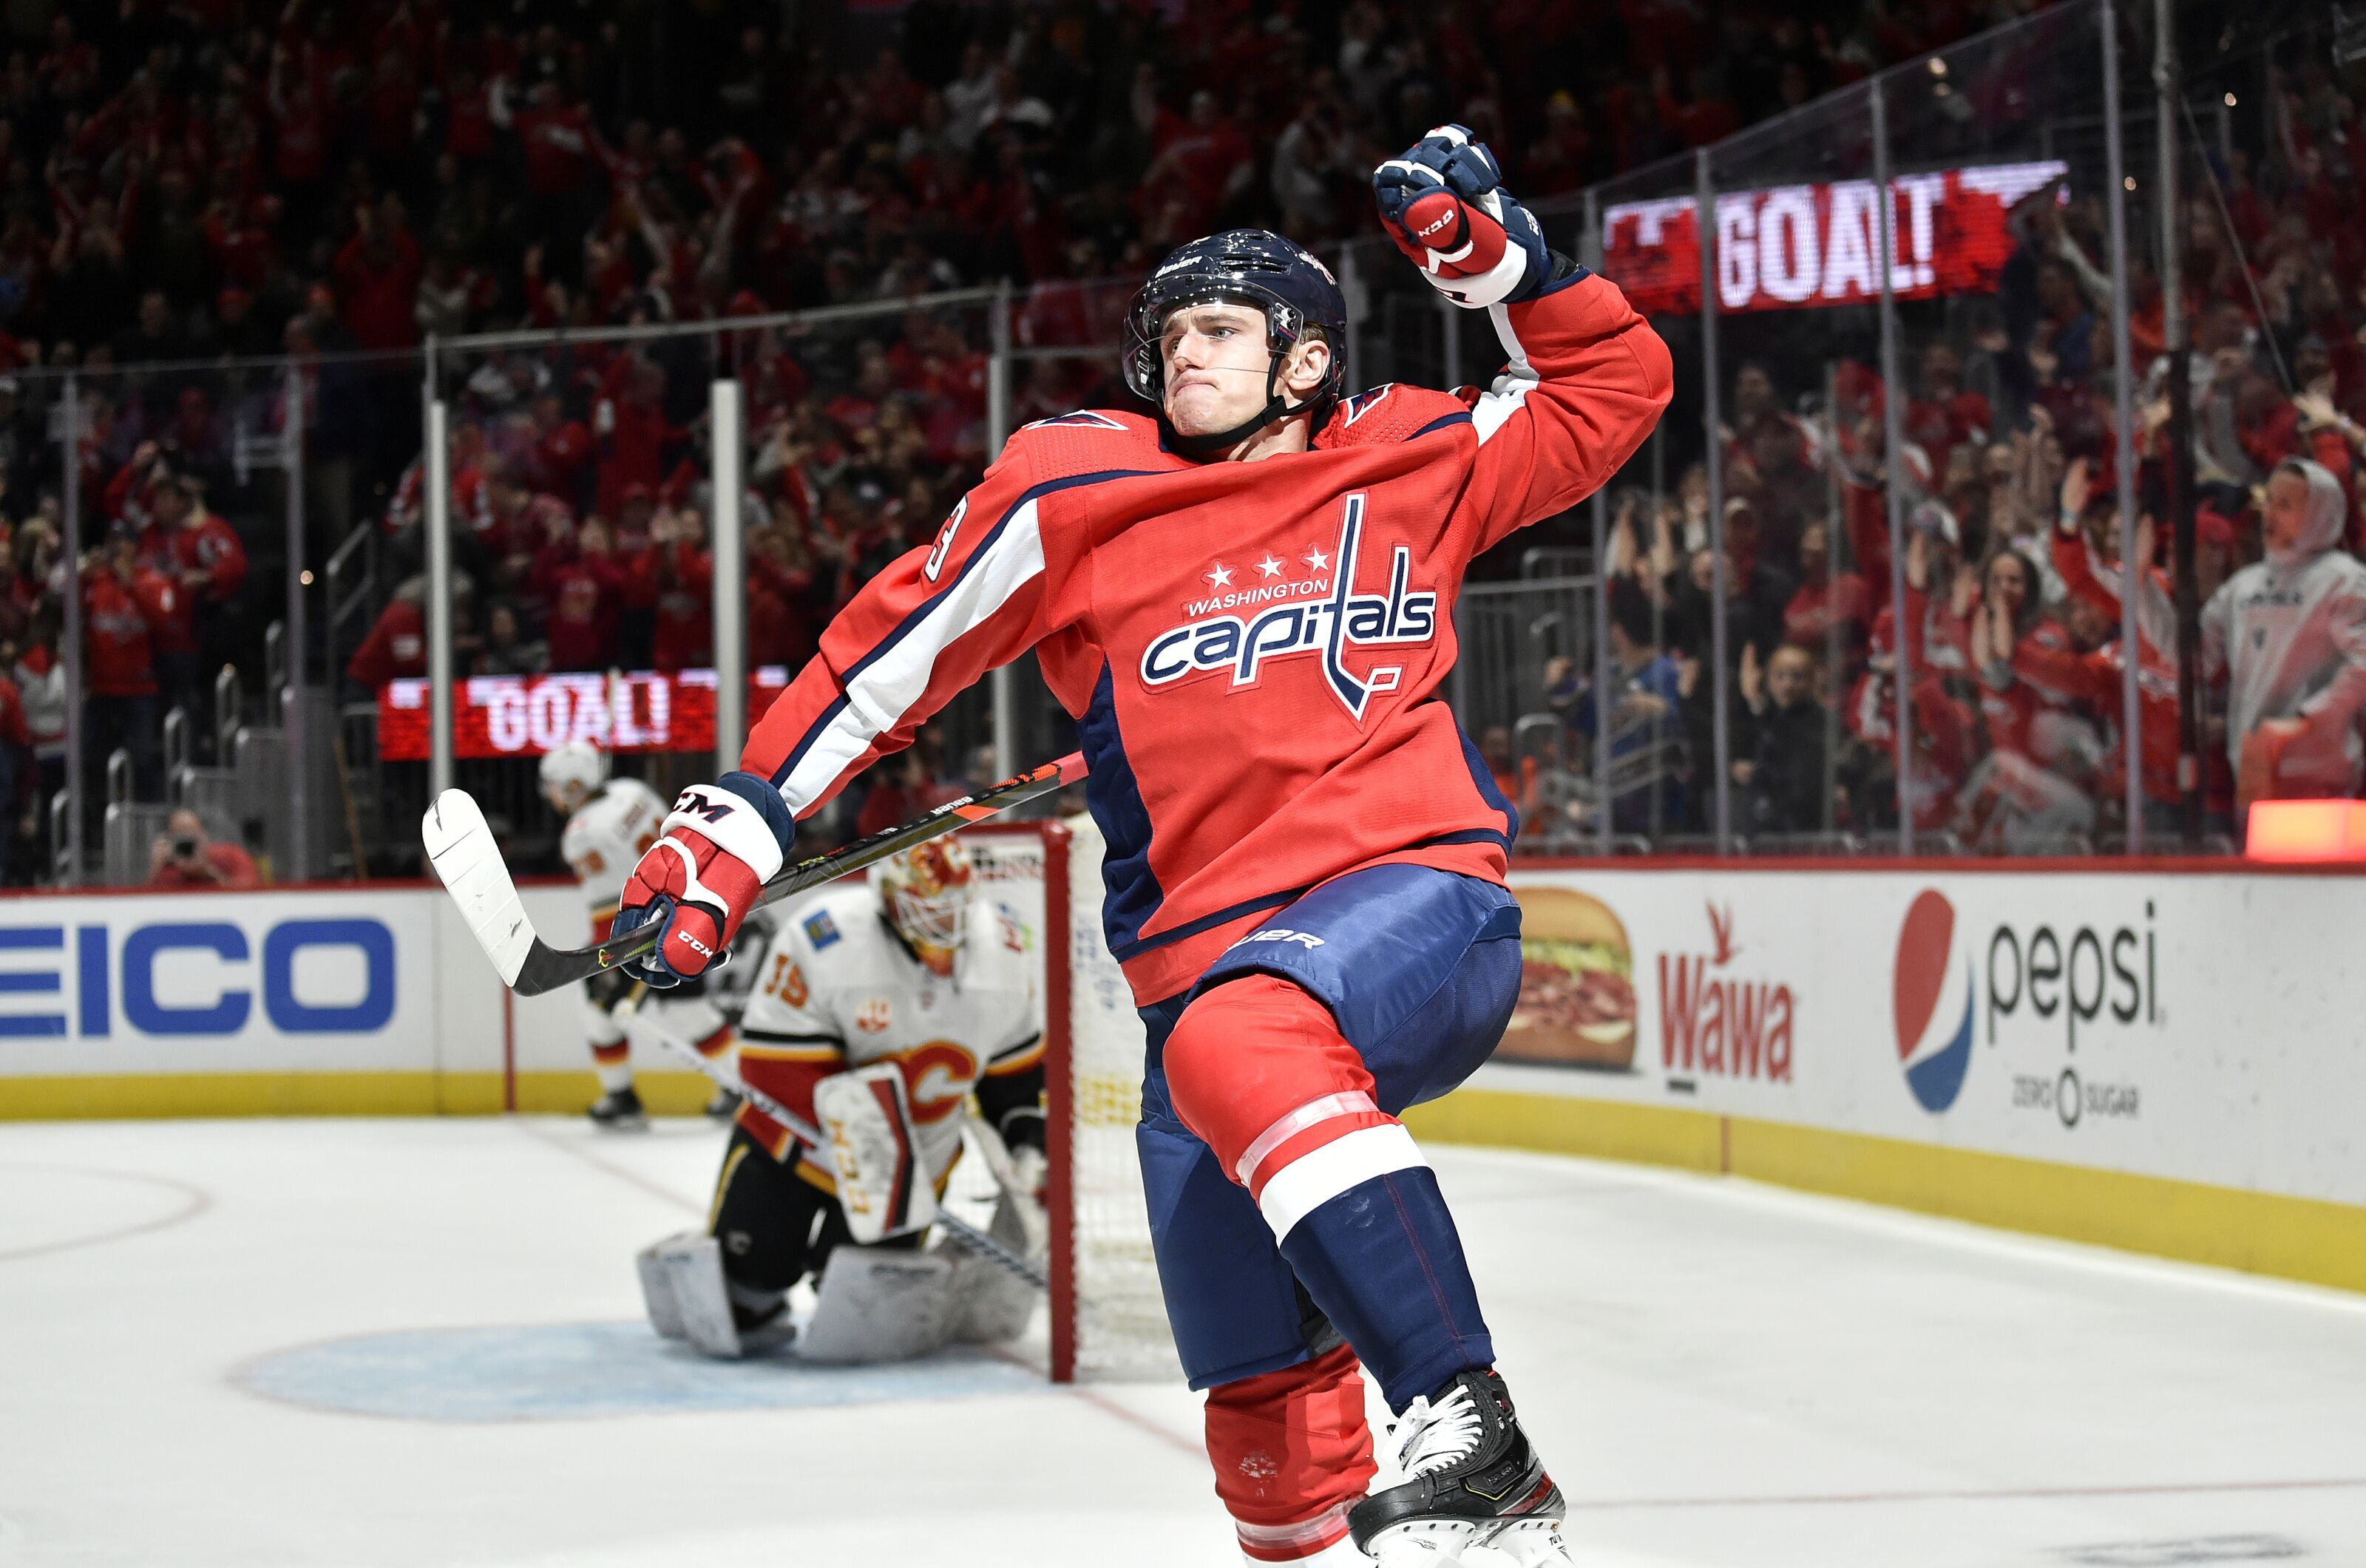 Capitals: Jakub Vrana and his Scoring Touch